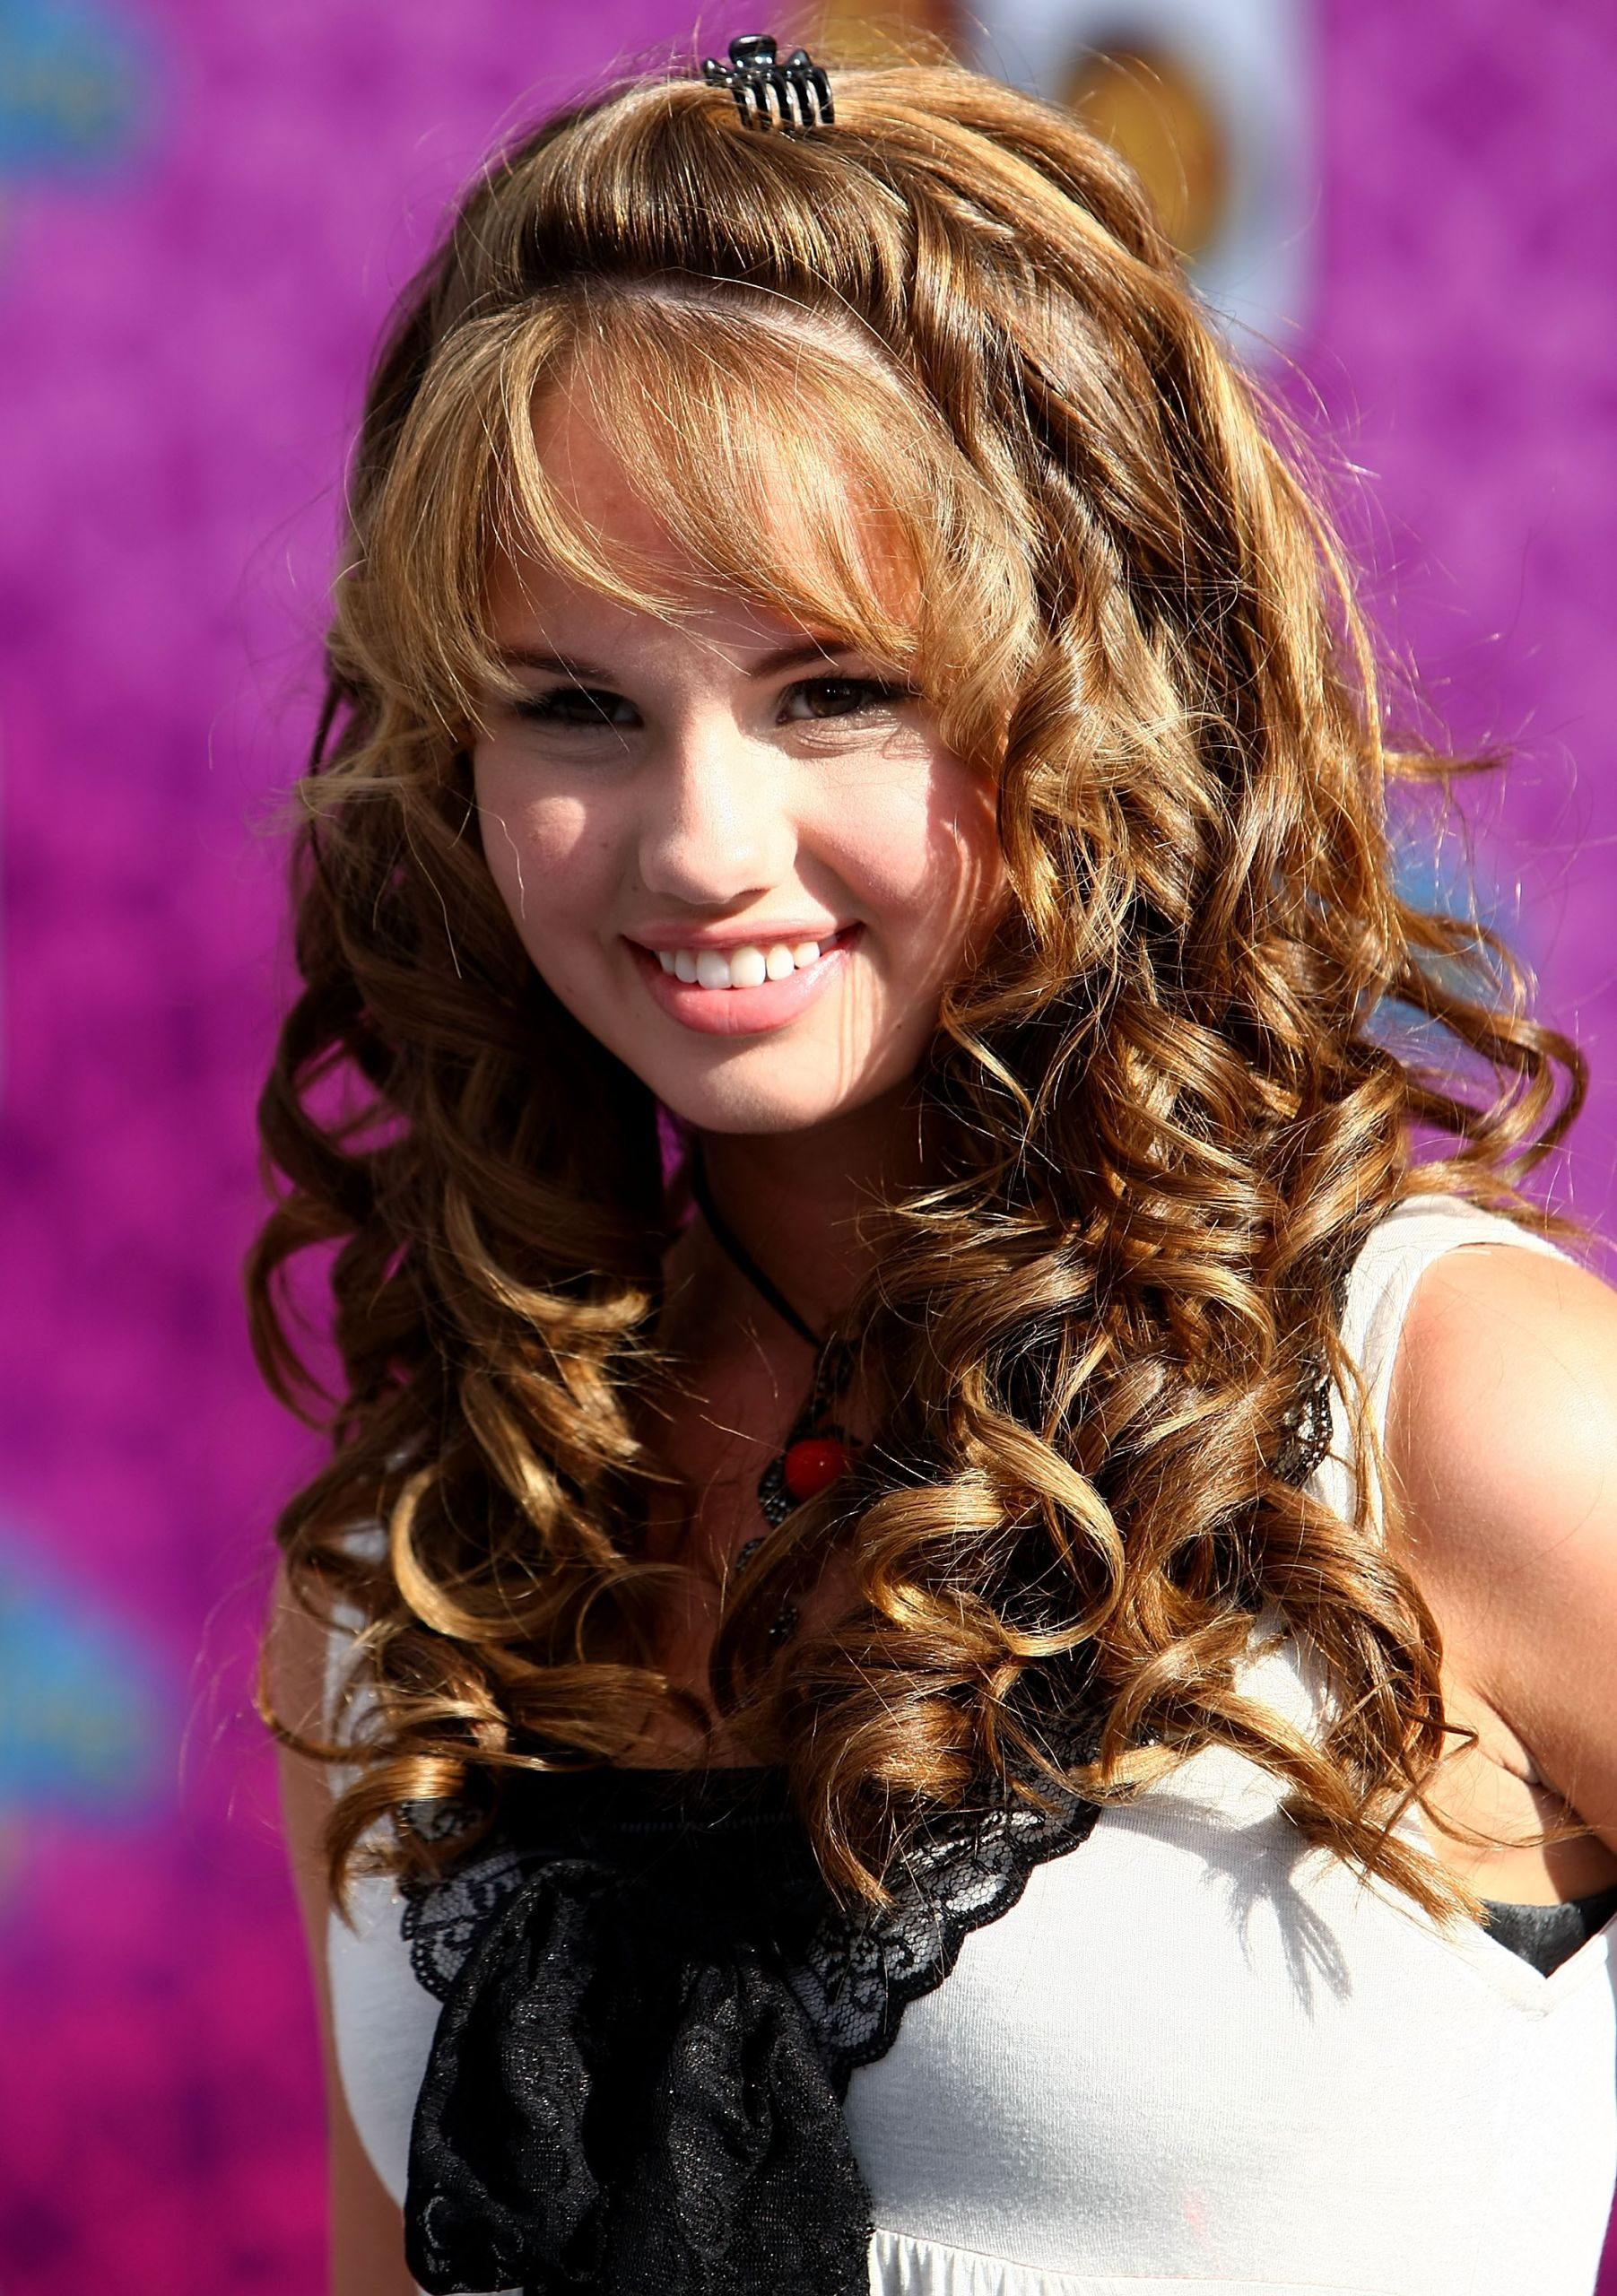 Hairstyle For Girls  25 Hairstyles For Girls To Try In 2015 The Xerxes